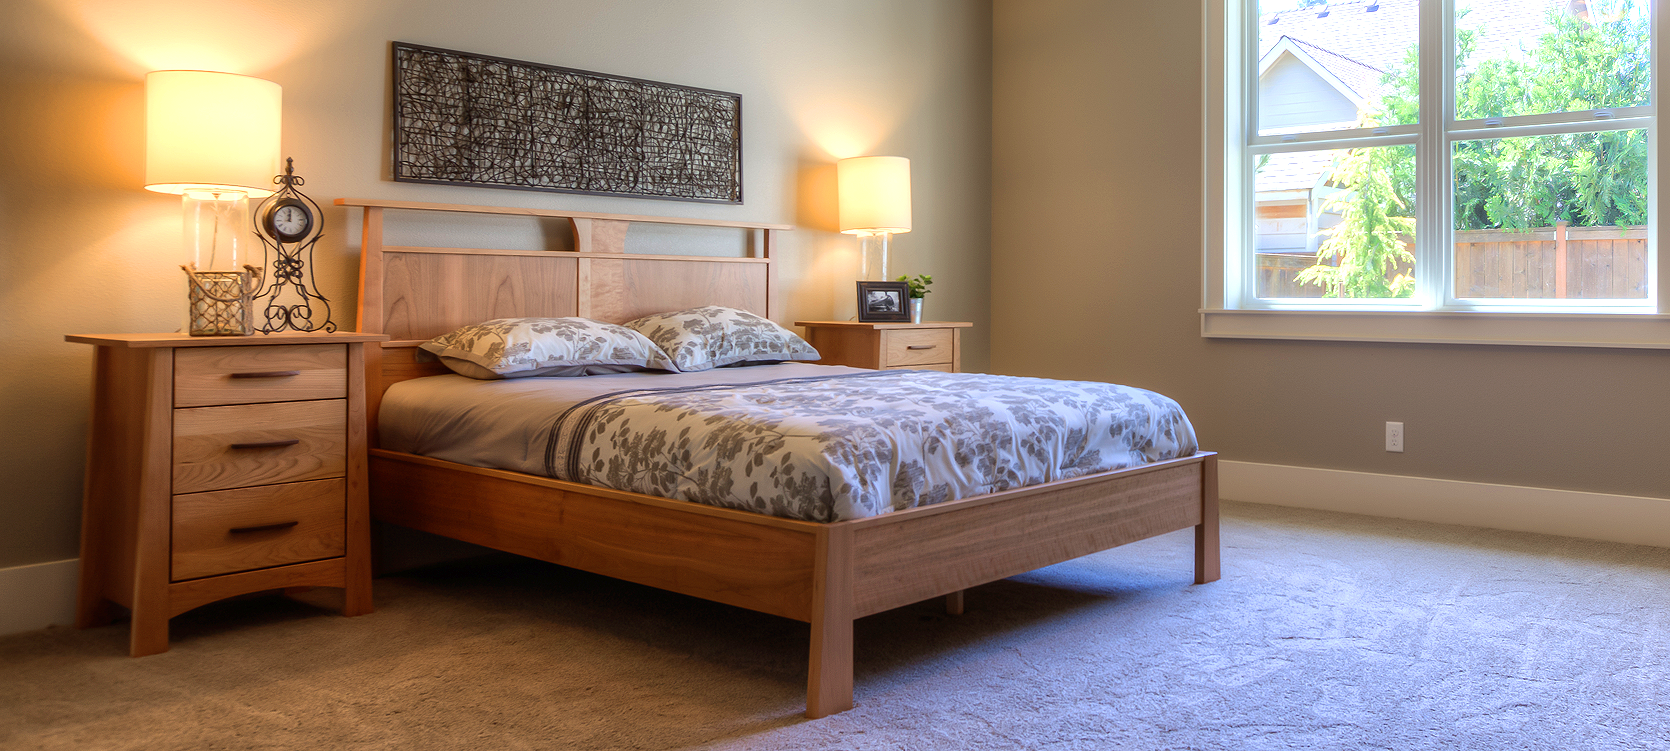 Shop our famous selection of real wood bedroom